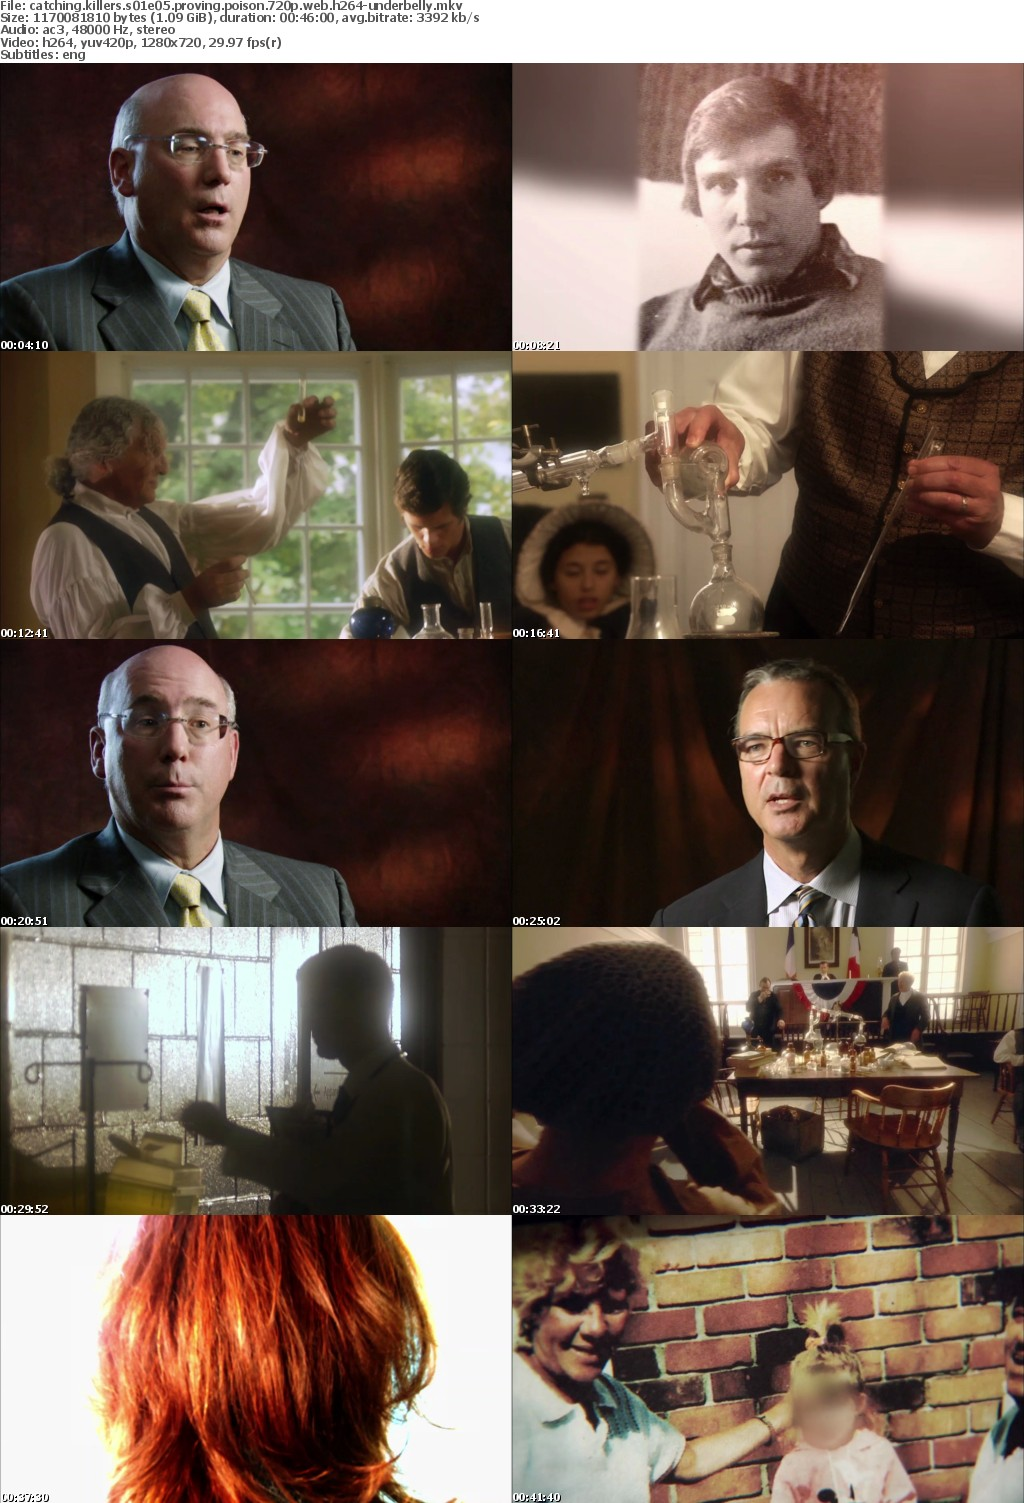 catching killers s01e05 proving poison 720p web h264-underbelly